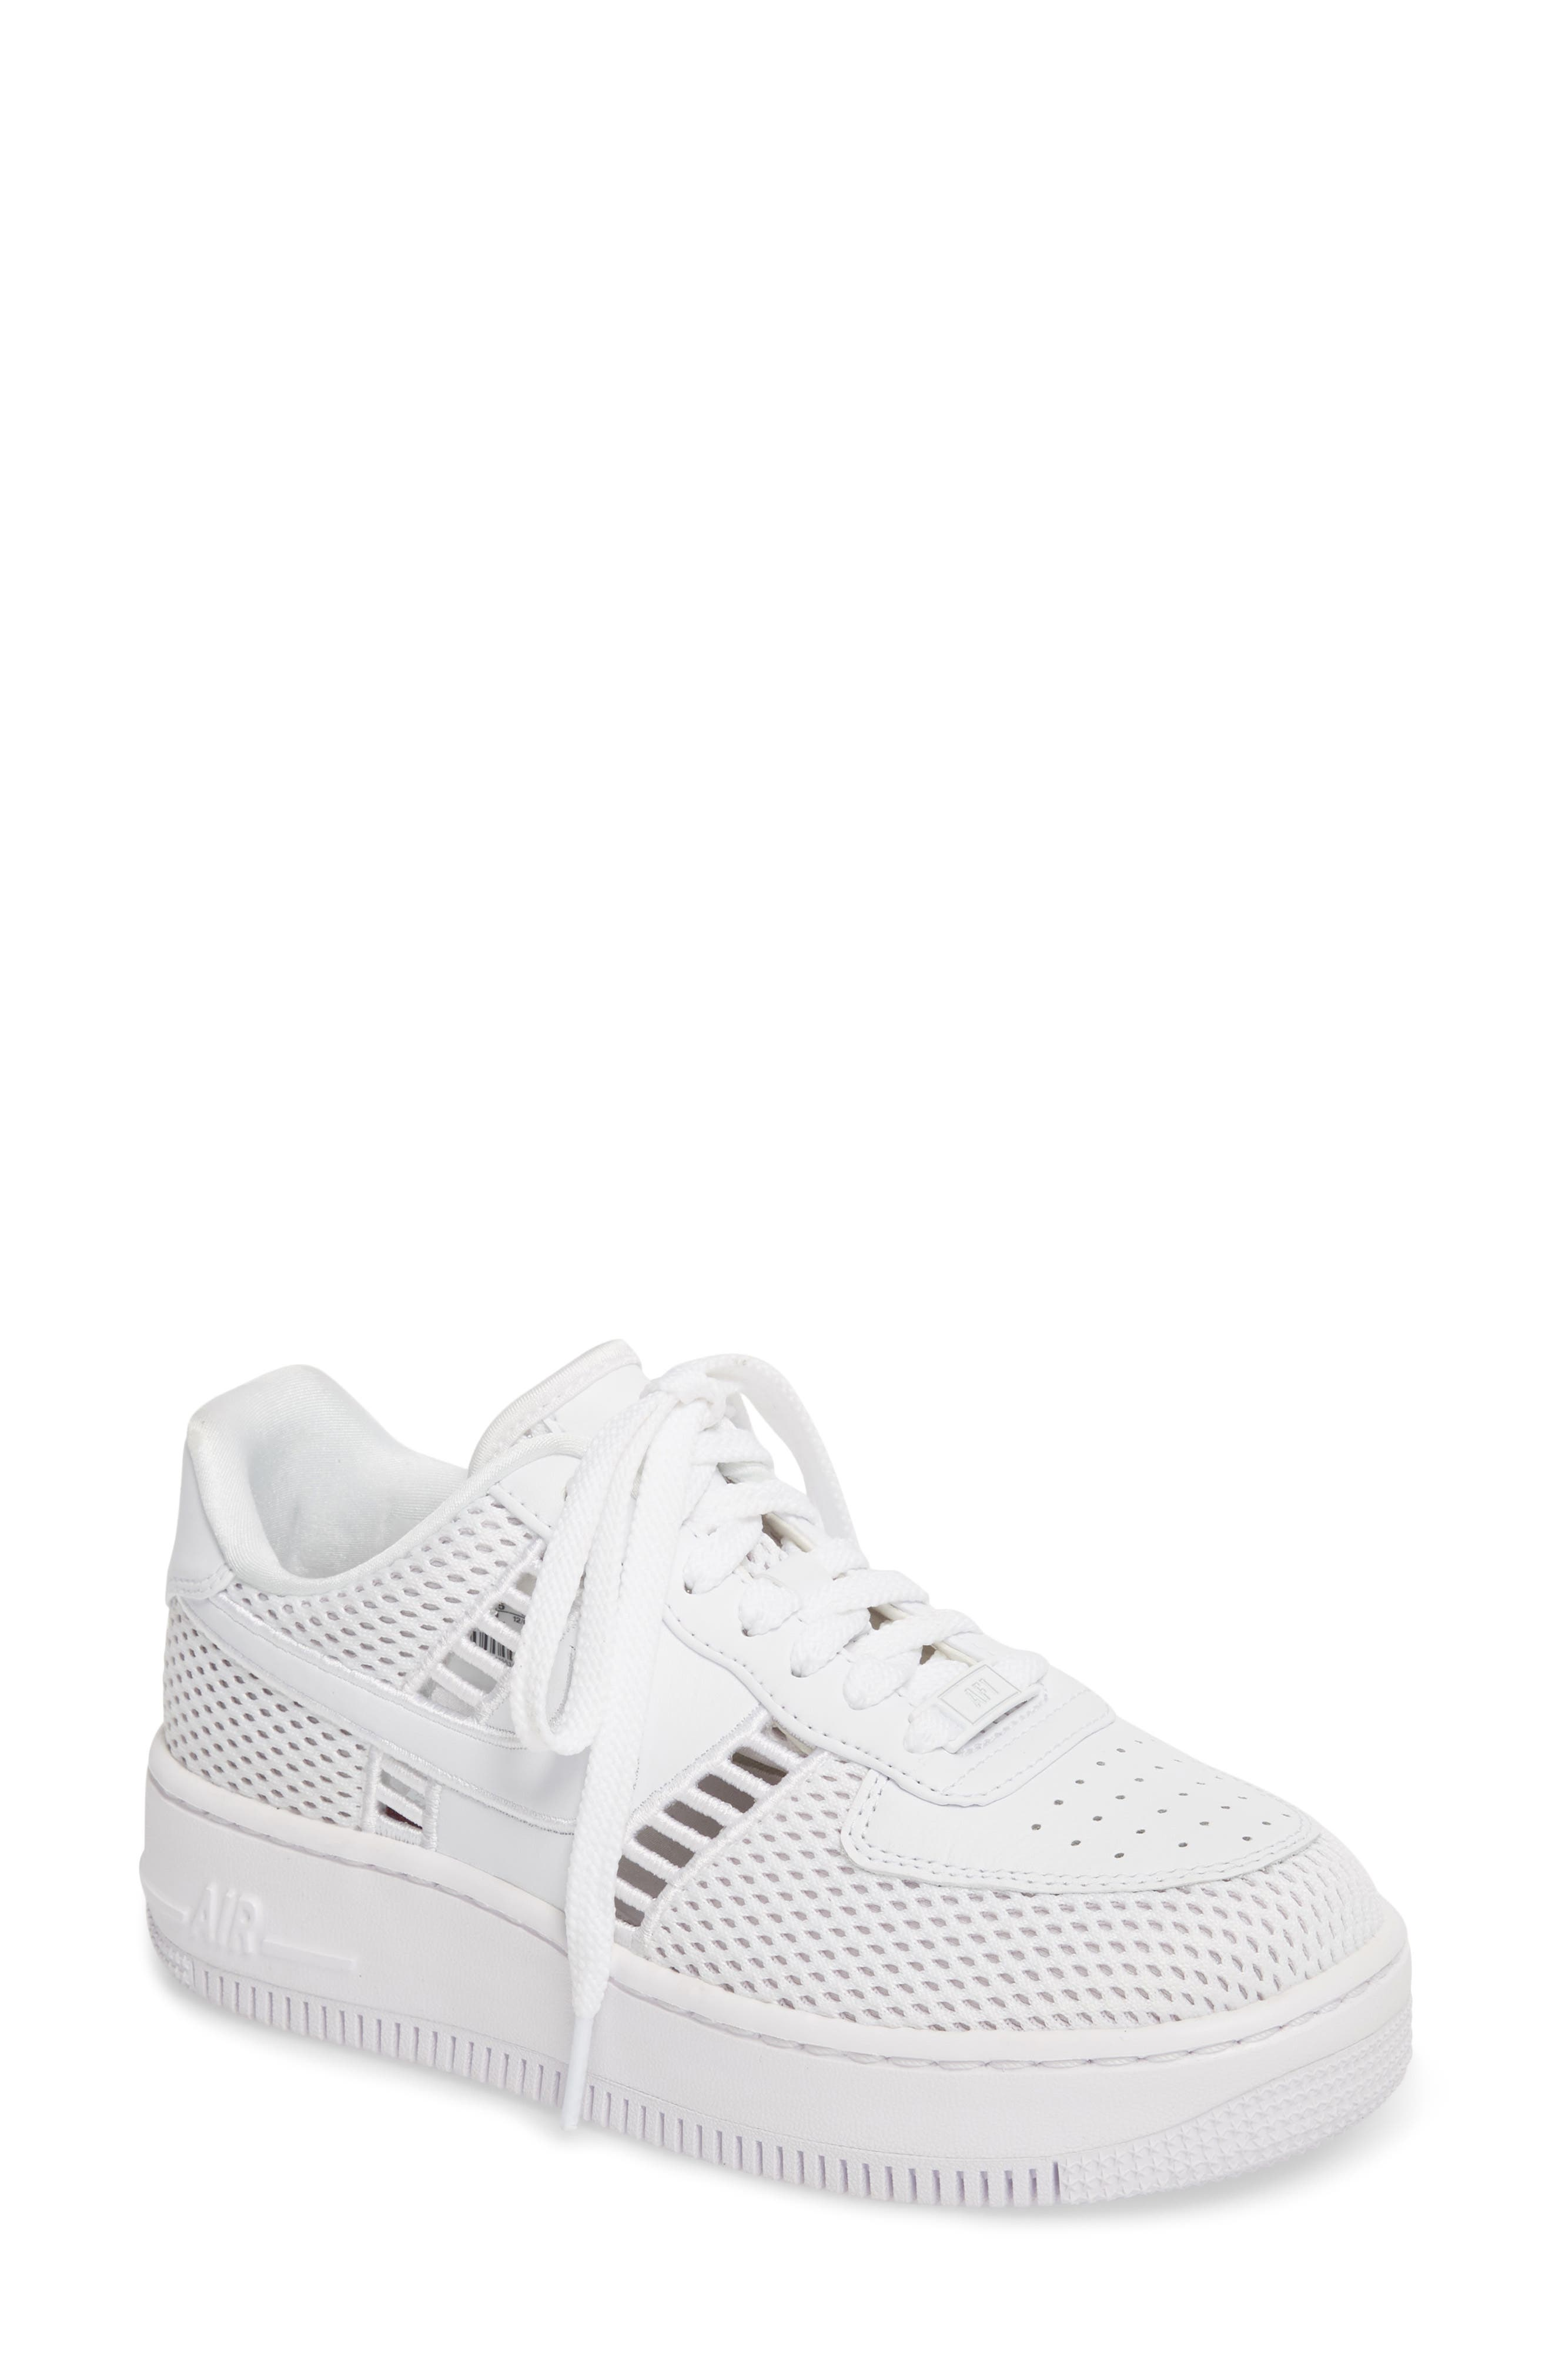 Air Force 1 Upstep SI Mesh Sneaker,                             Main thumbnail 1, color,                             100